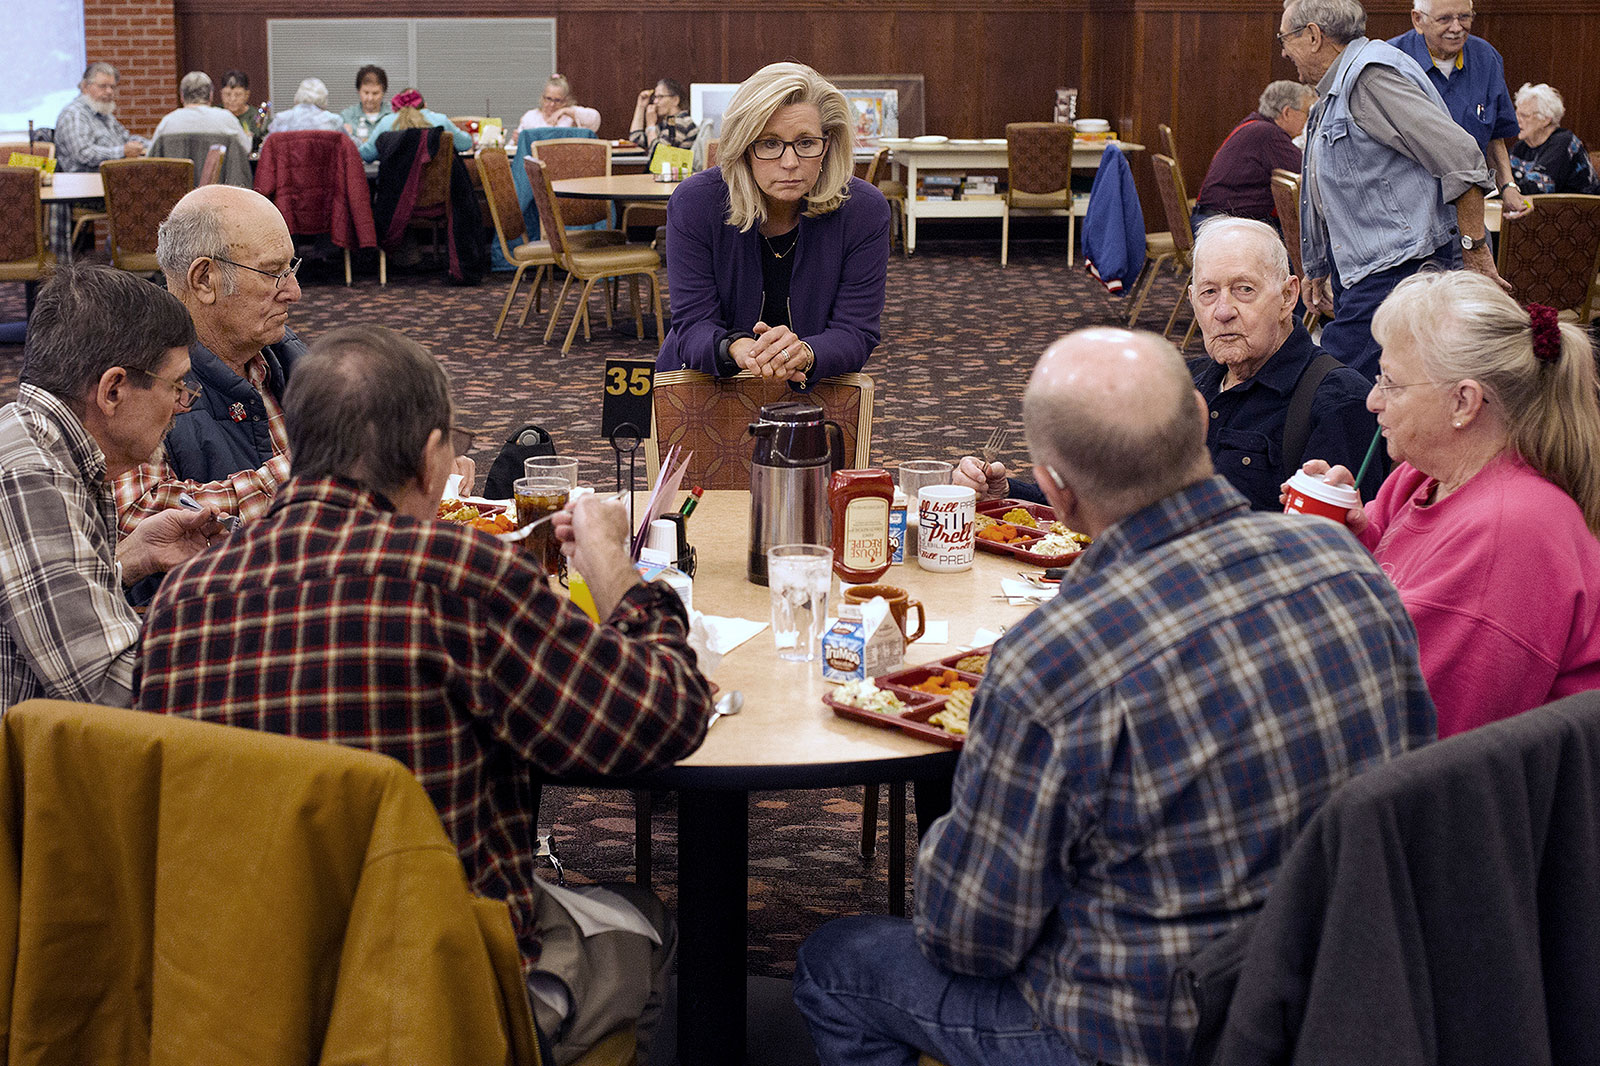 Cheney talks to people at the Senior Citizens Center in Gillette, Wyoming, in February 2016. Earlier in the day, she announced that she was running for Congress.